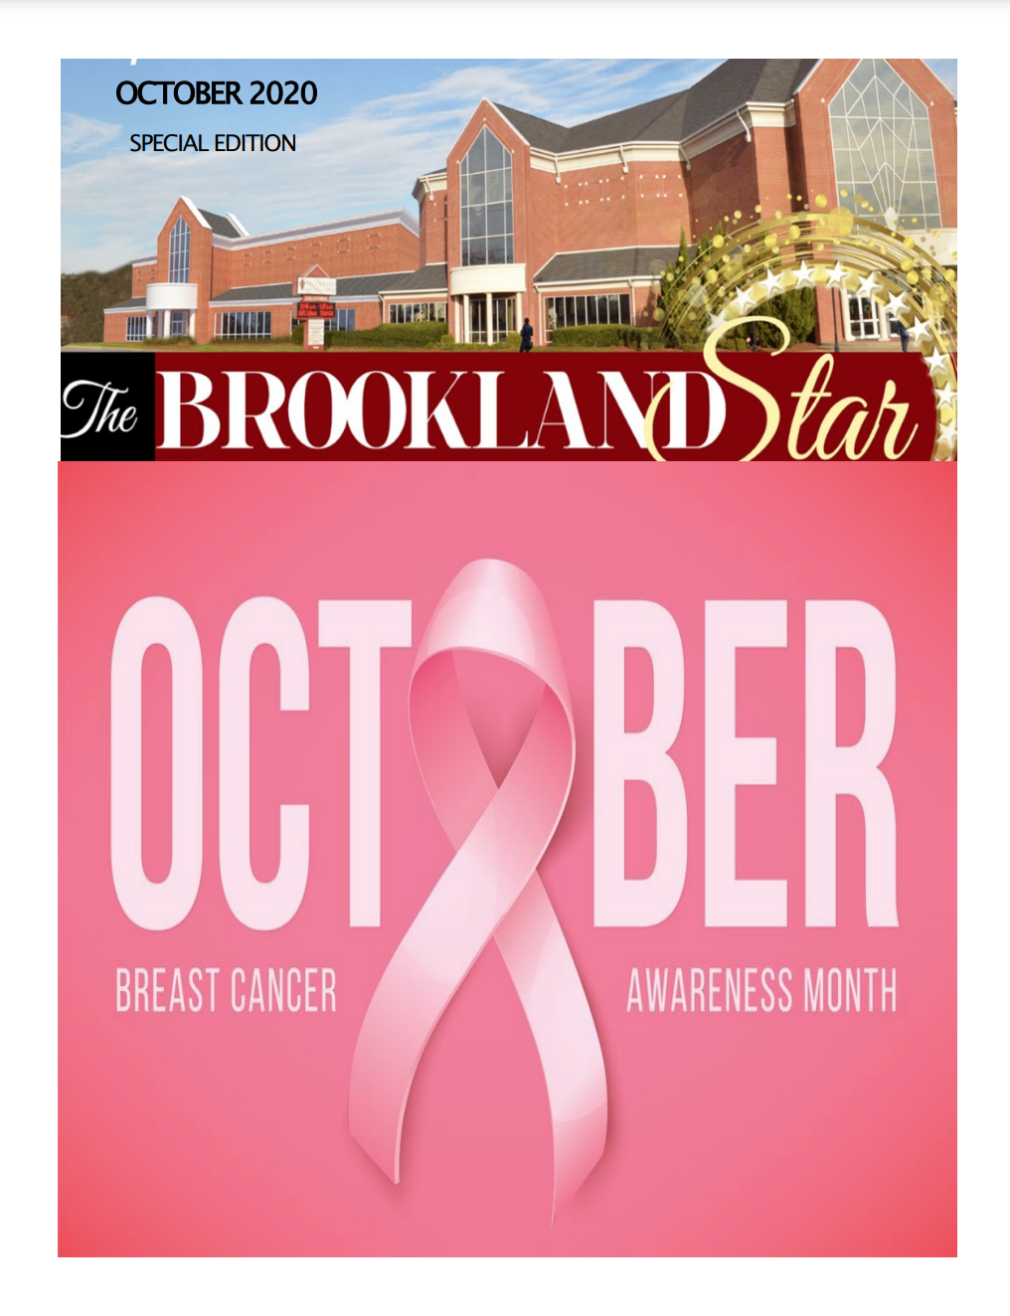 The Brookland Star October 2020 Edition